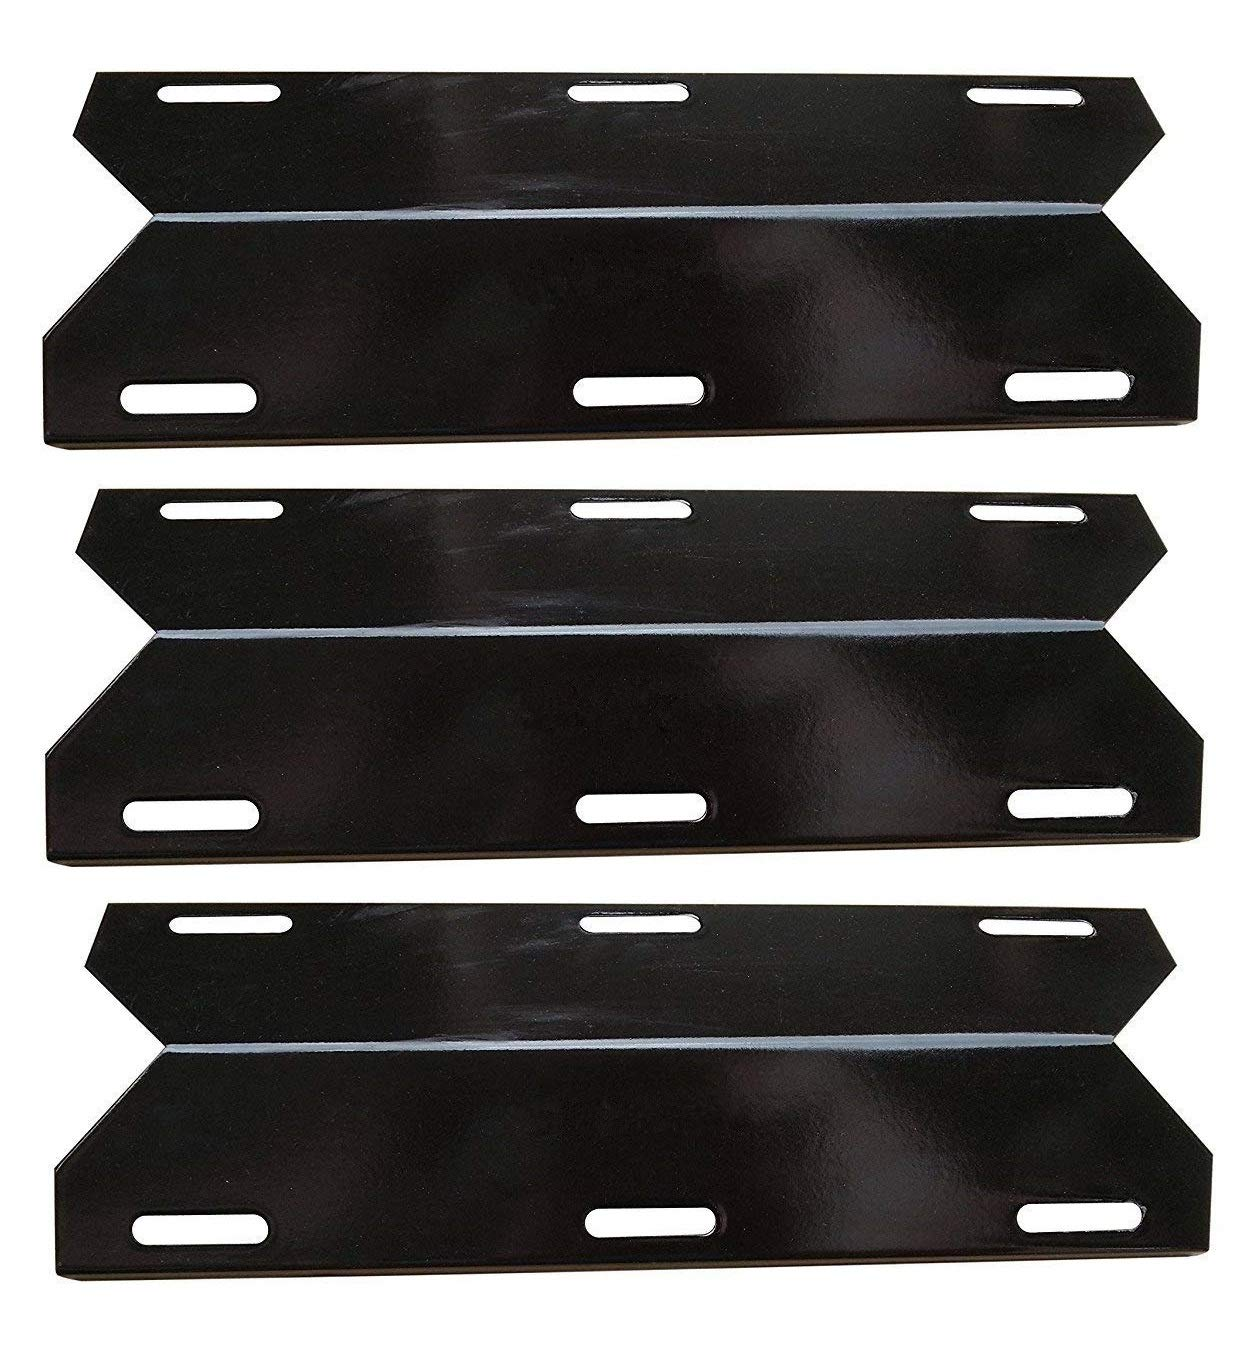 Hongso PPA241 Grill Heat Plate Shield Tent for Charmglow, Nexgrill 720-0230, 720-0036-HD-05 Replacement Parts, 3-Pack 17 1/4 inch Porcelain Steel BBQ Burner Cover Flame Tamer by Hongso (Image #1)